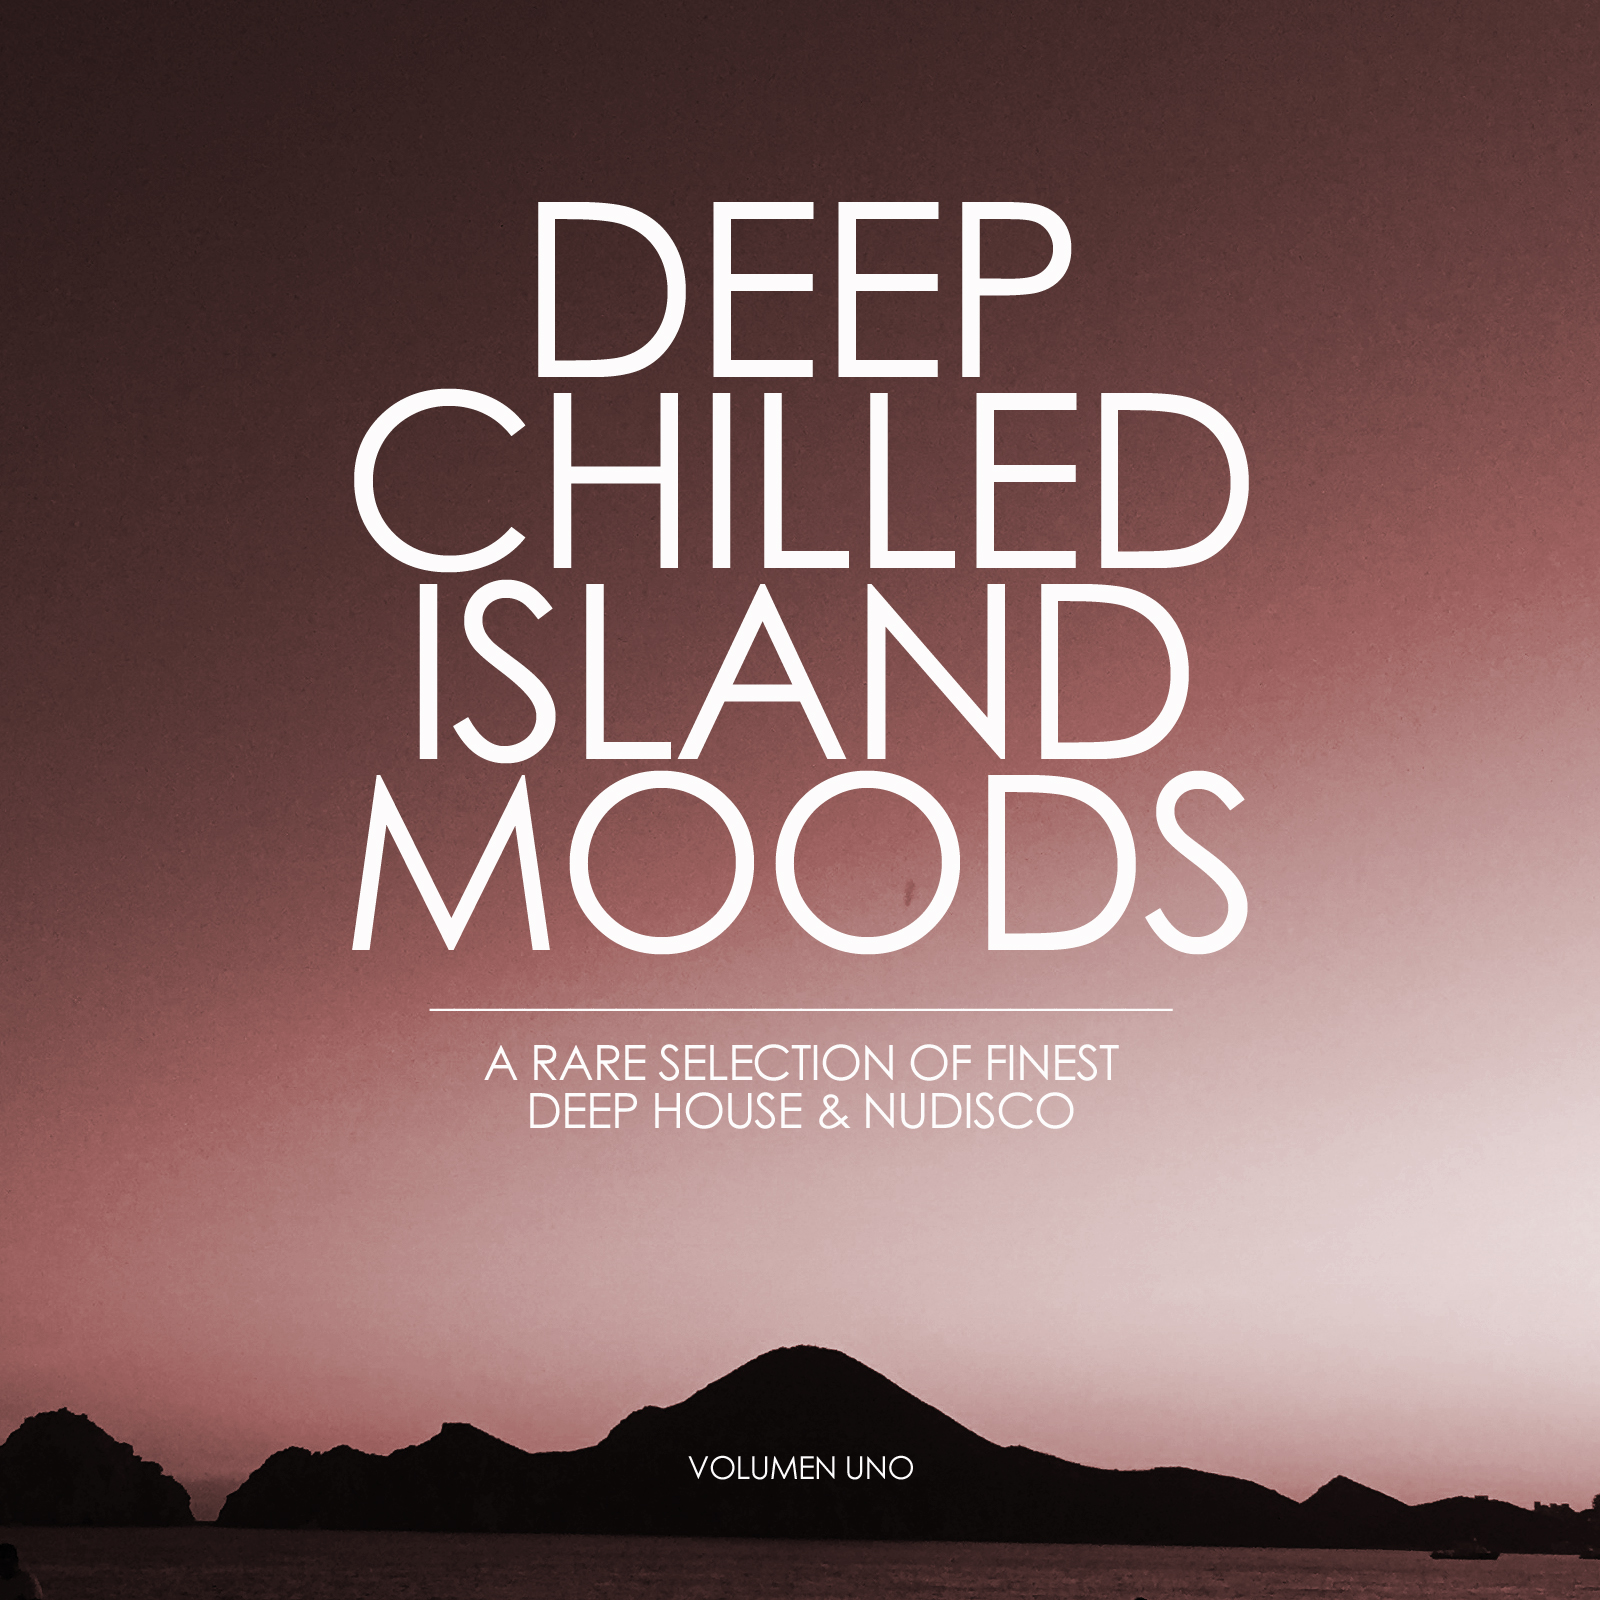 deep_chilled_island_moods_vol1